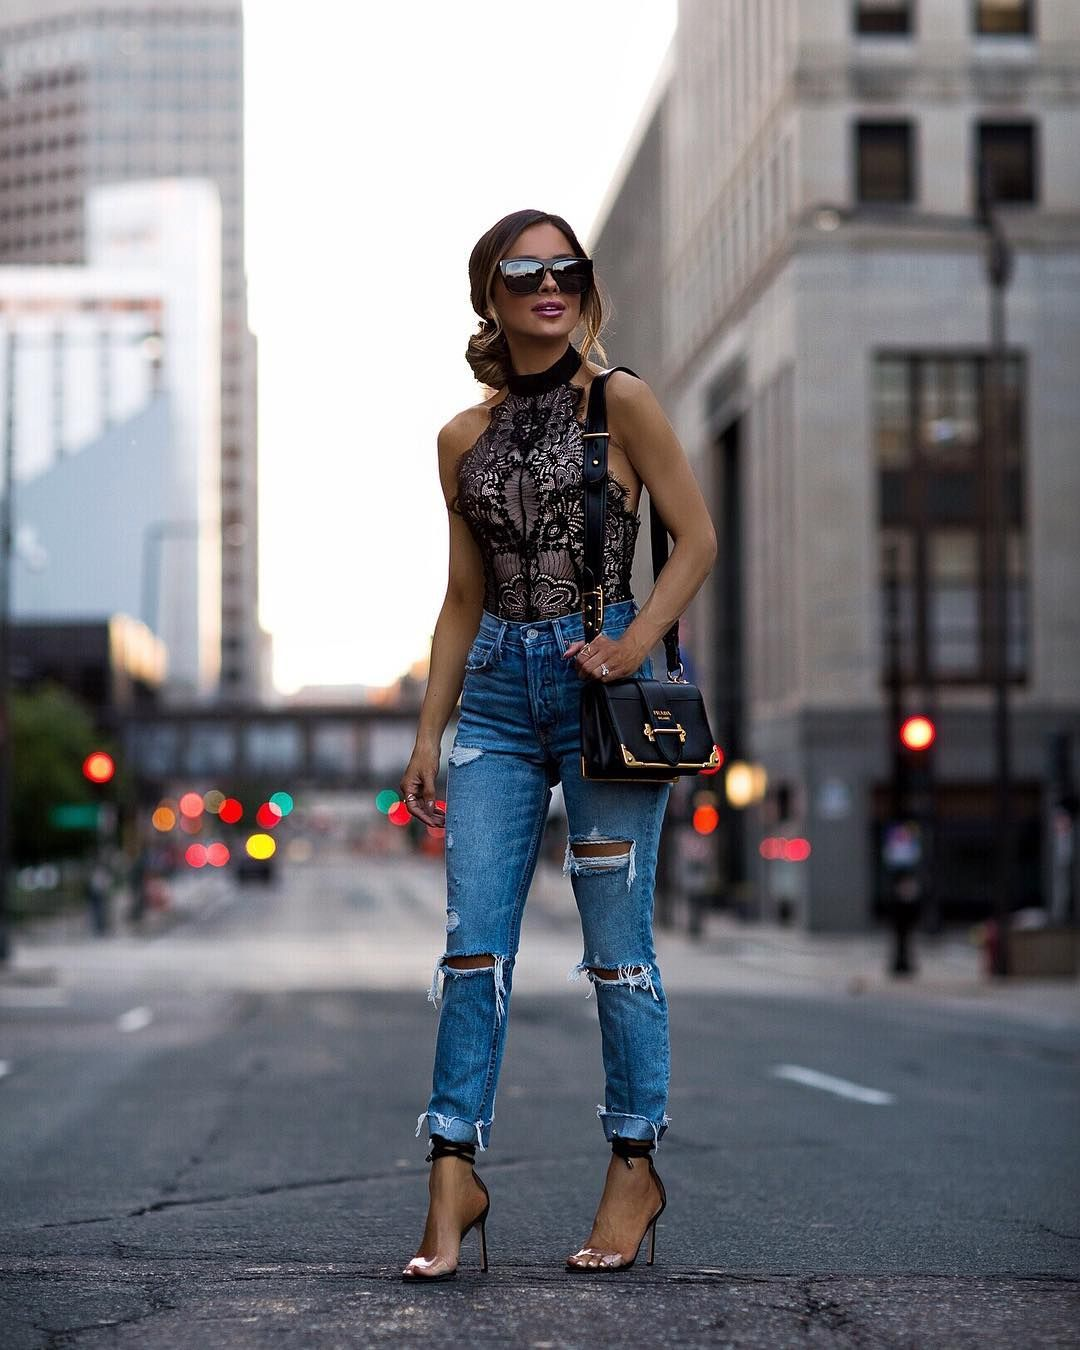 Lace bodysuit with high waisted jeans  Delicate details   Sharing some of my favorite designer pieces